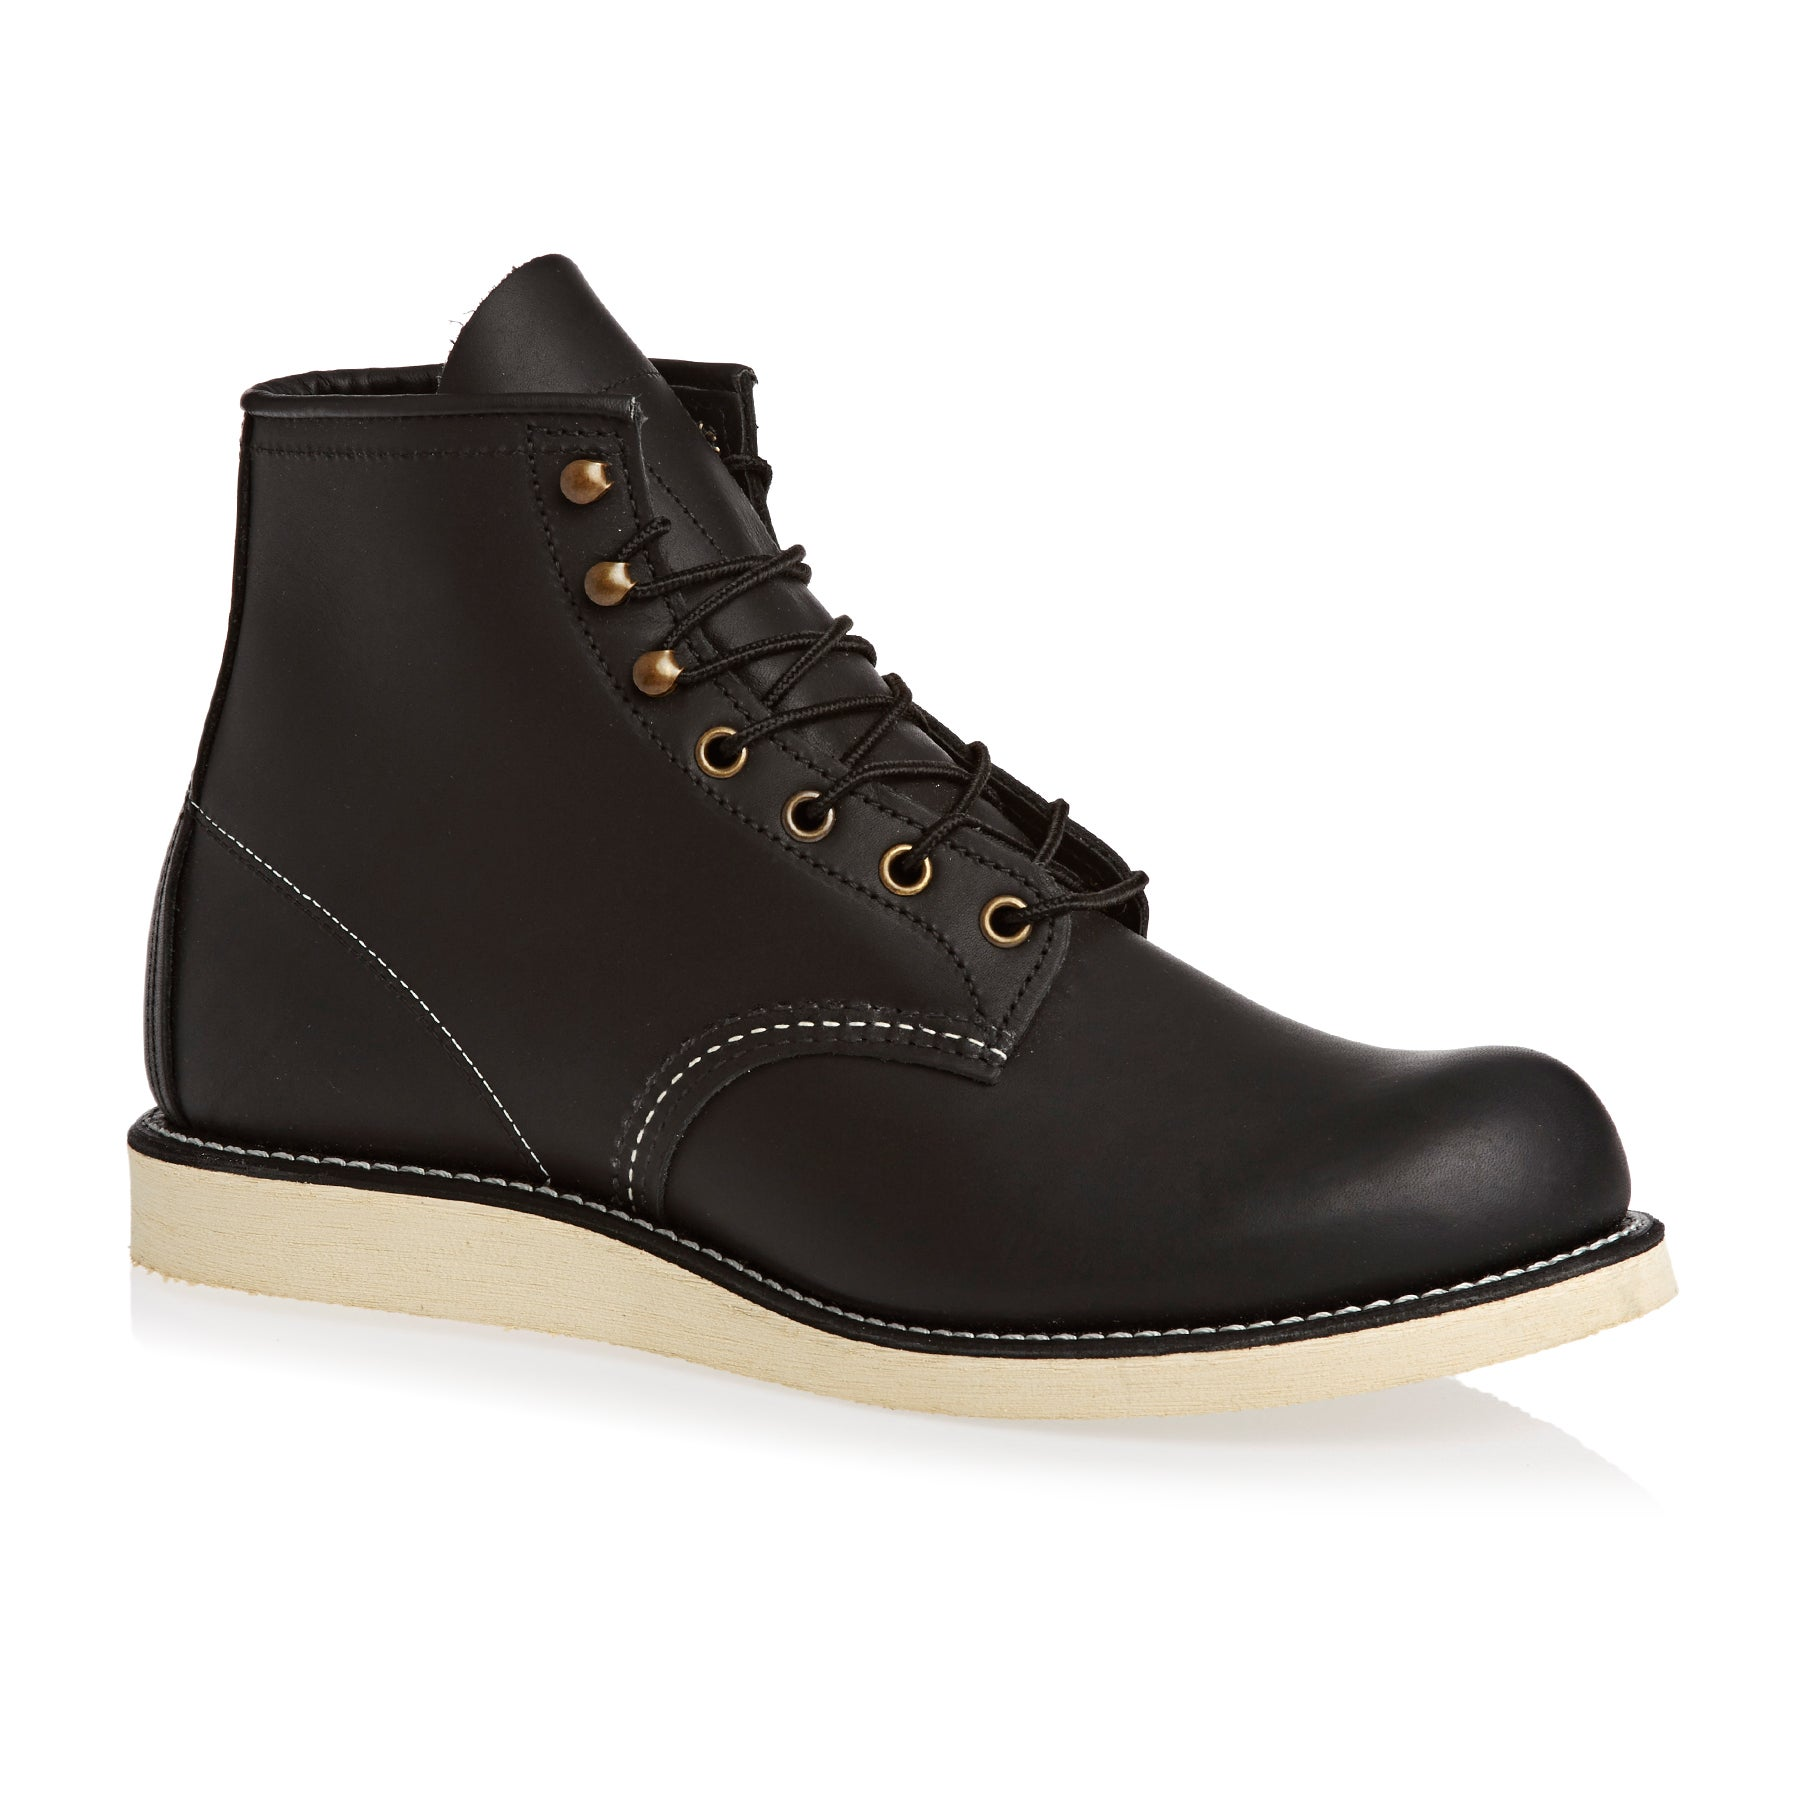 Red Wing Rover Boots - Black Harness